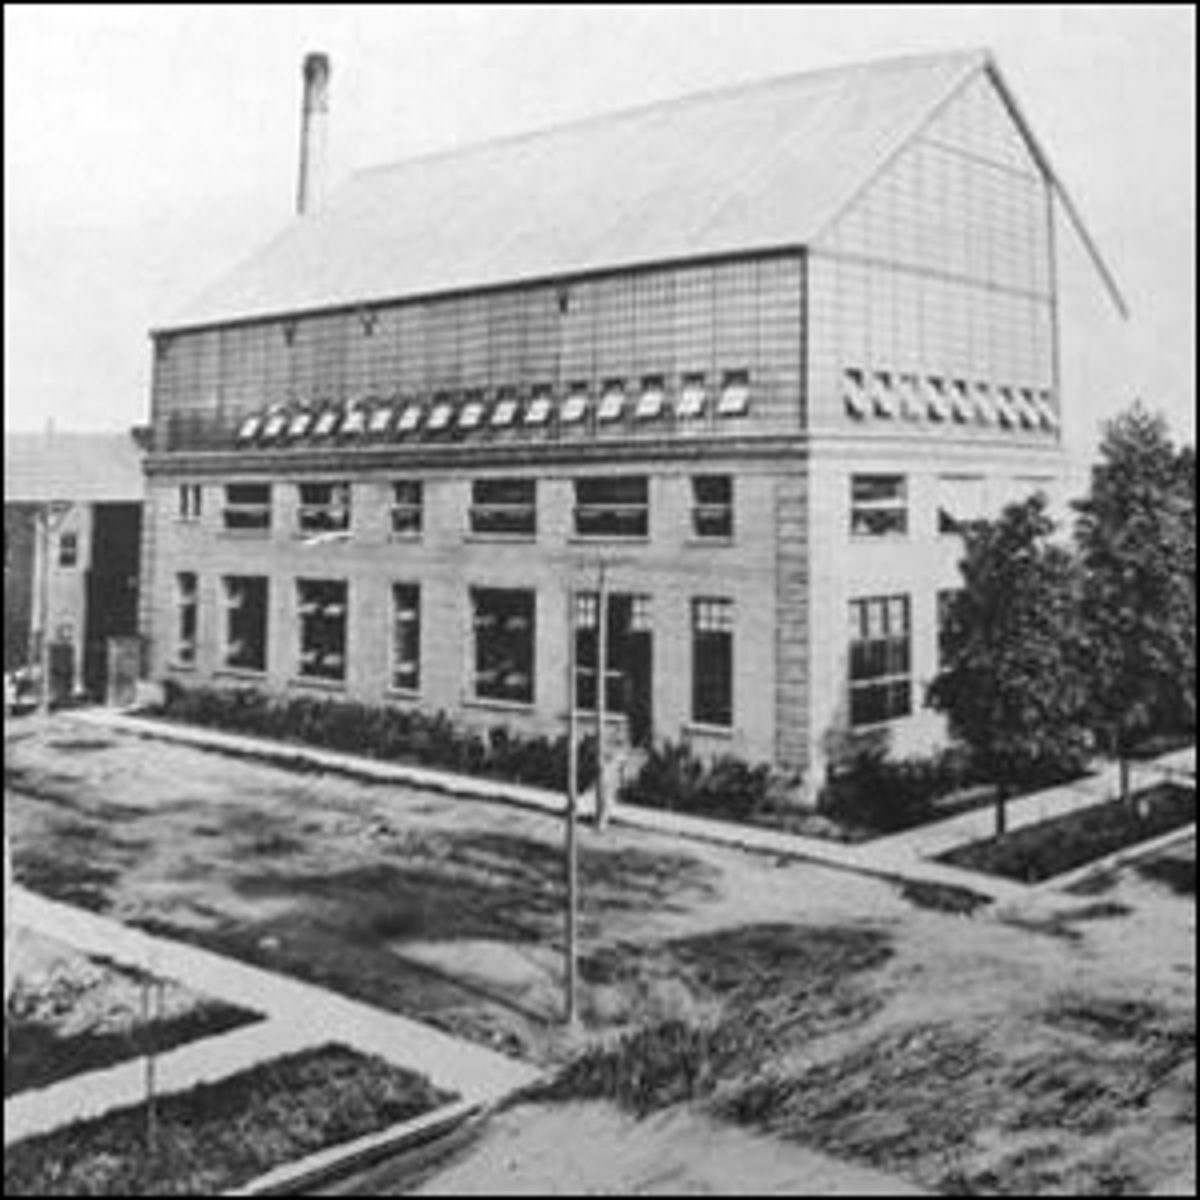 The Selig Polyscope Company in Chicago showing the glass house on top of a building used to film in daylight.